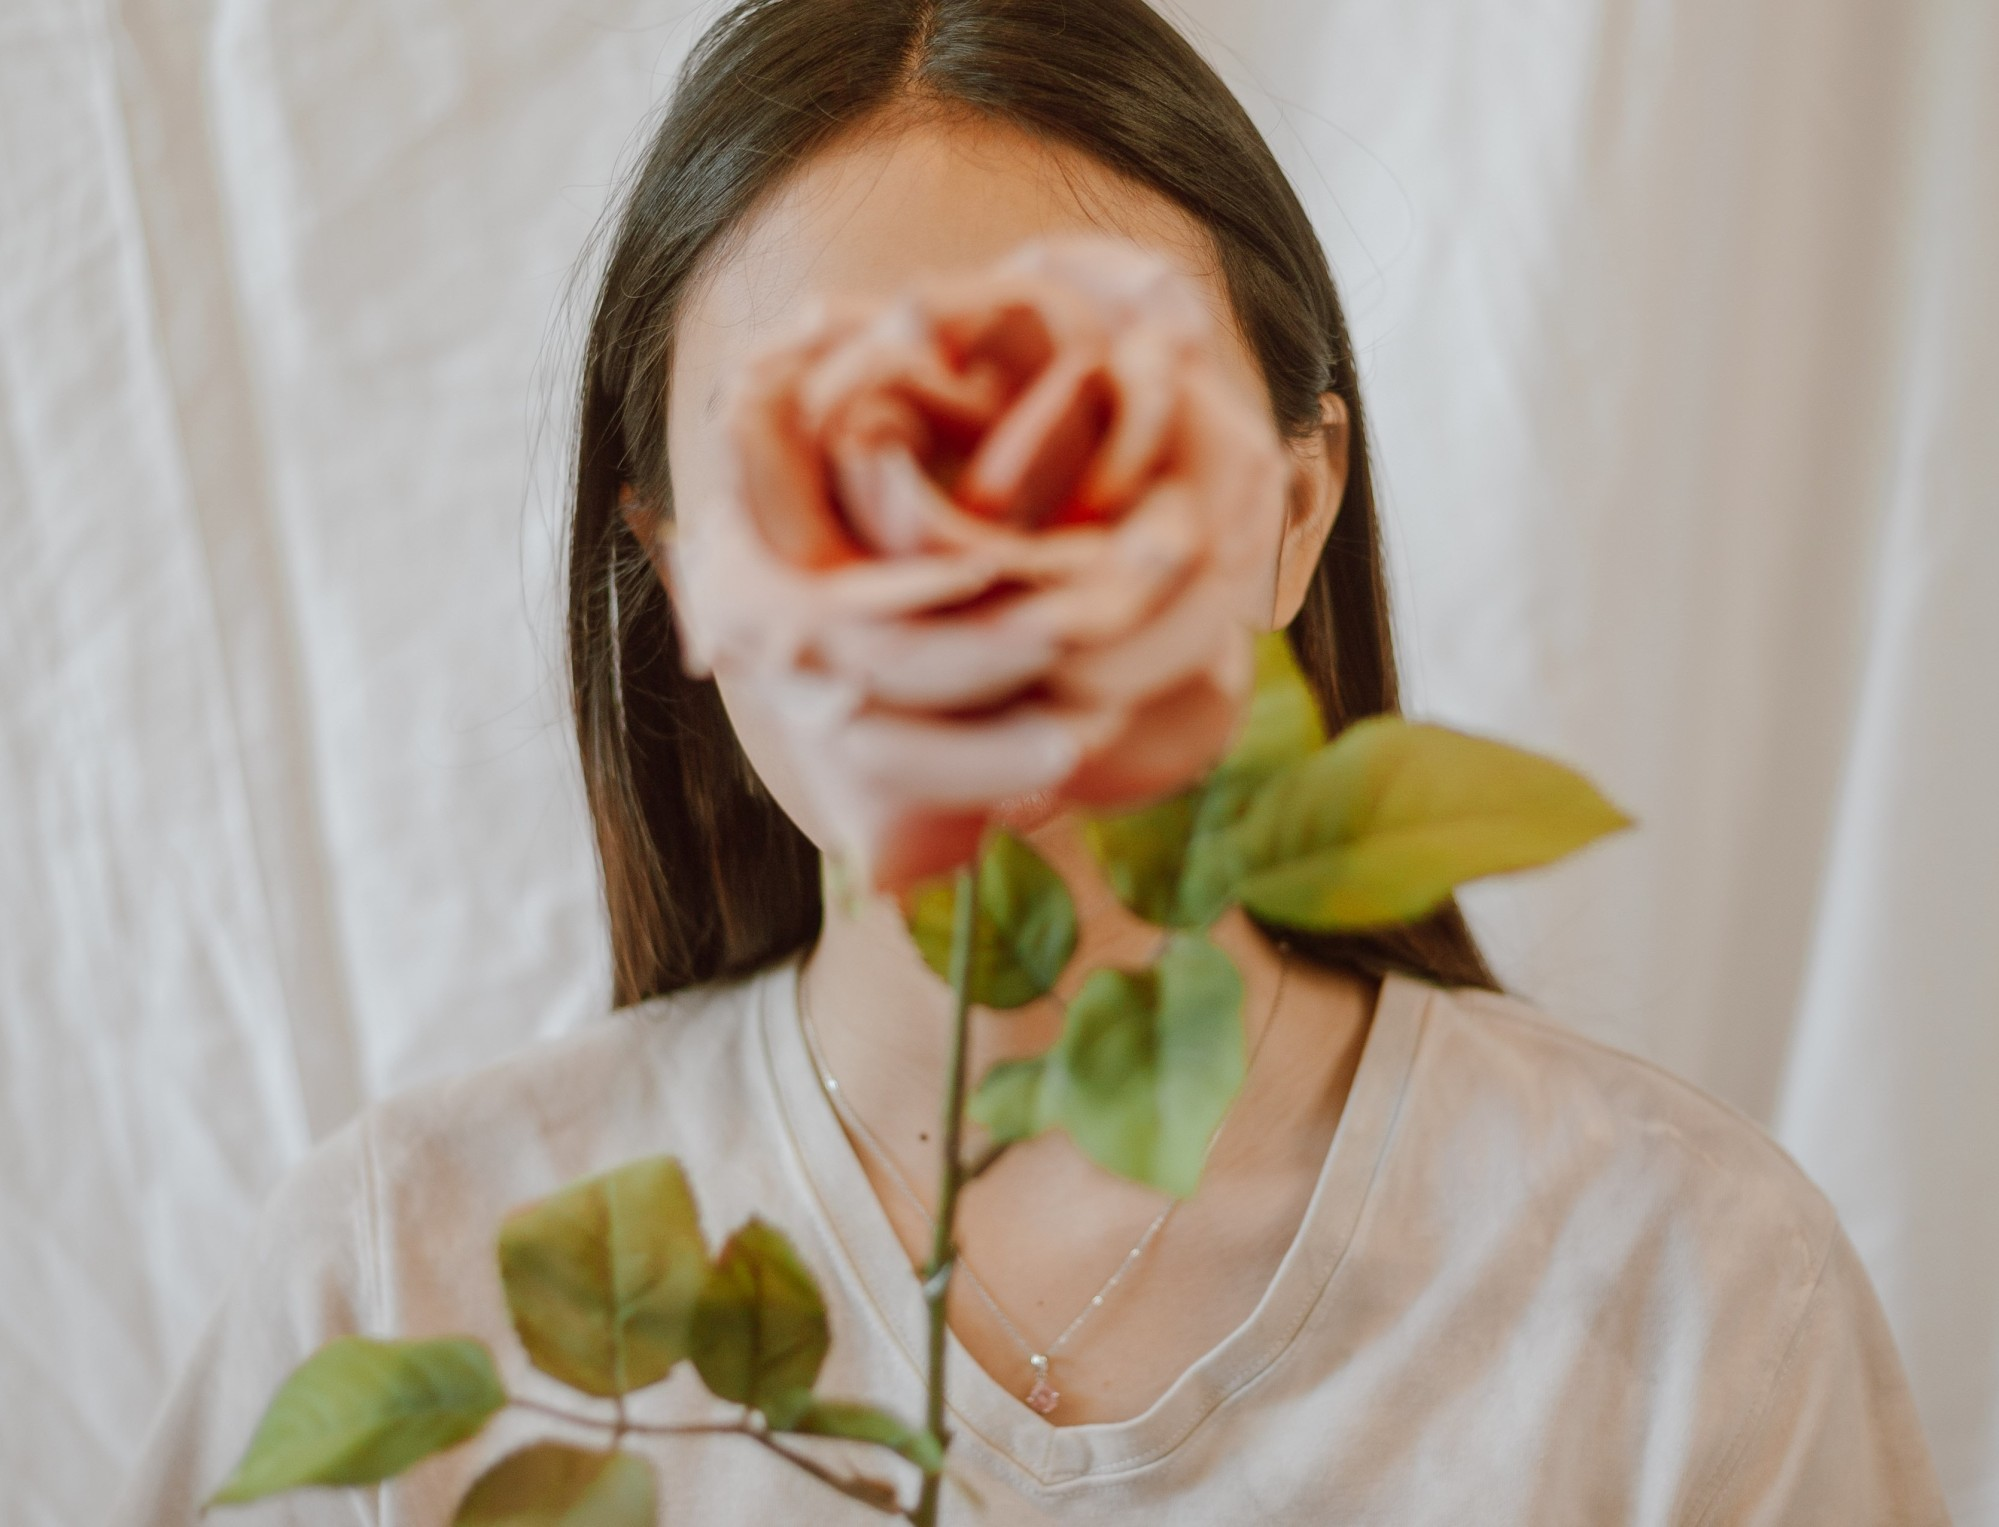 Seen, this phot of a woman with a rose in front of her face. Seen is a poem